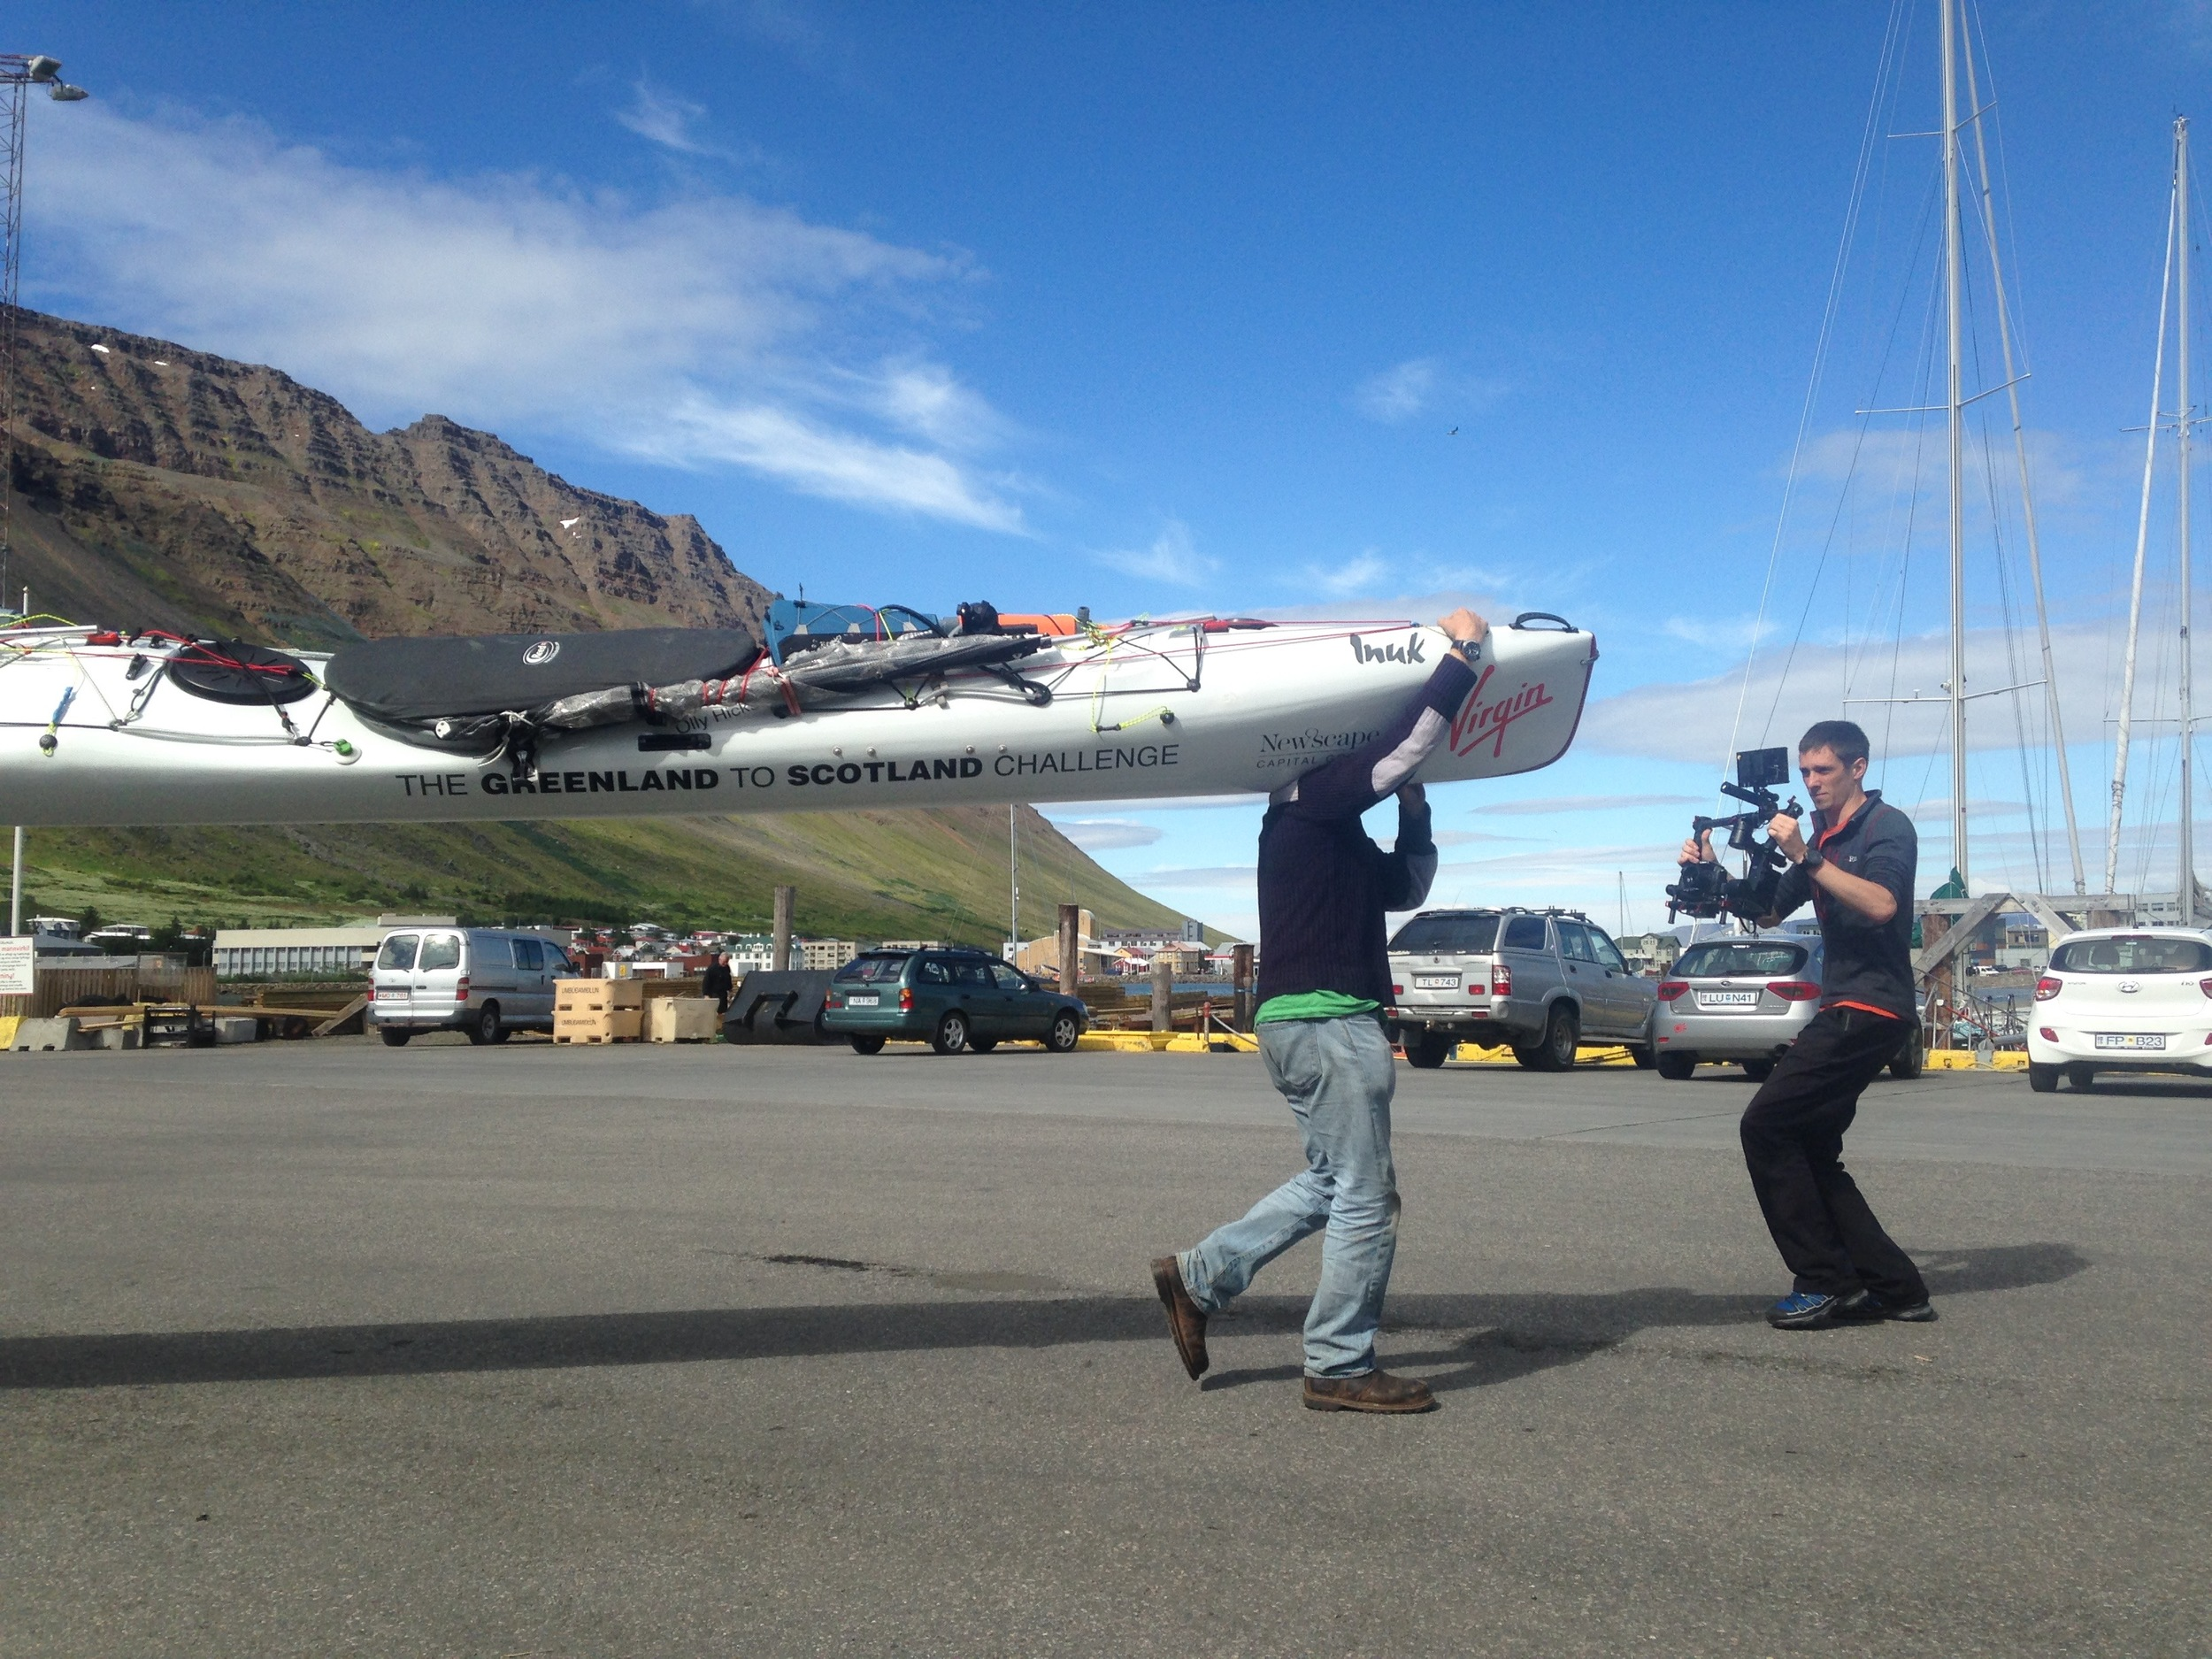 Transporting the kayak onto Aurora to take her up to Greenland